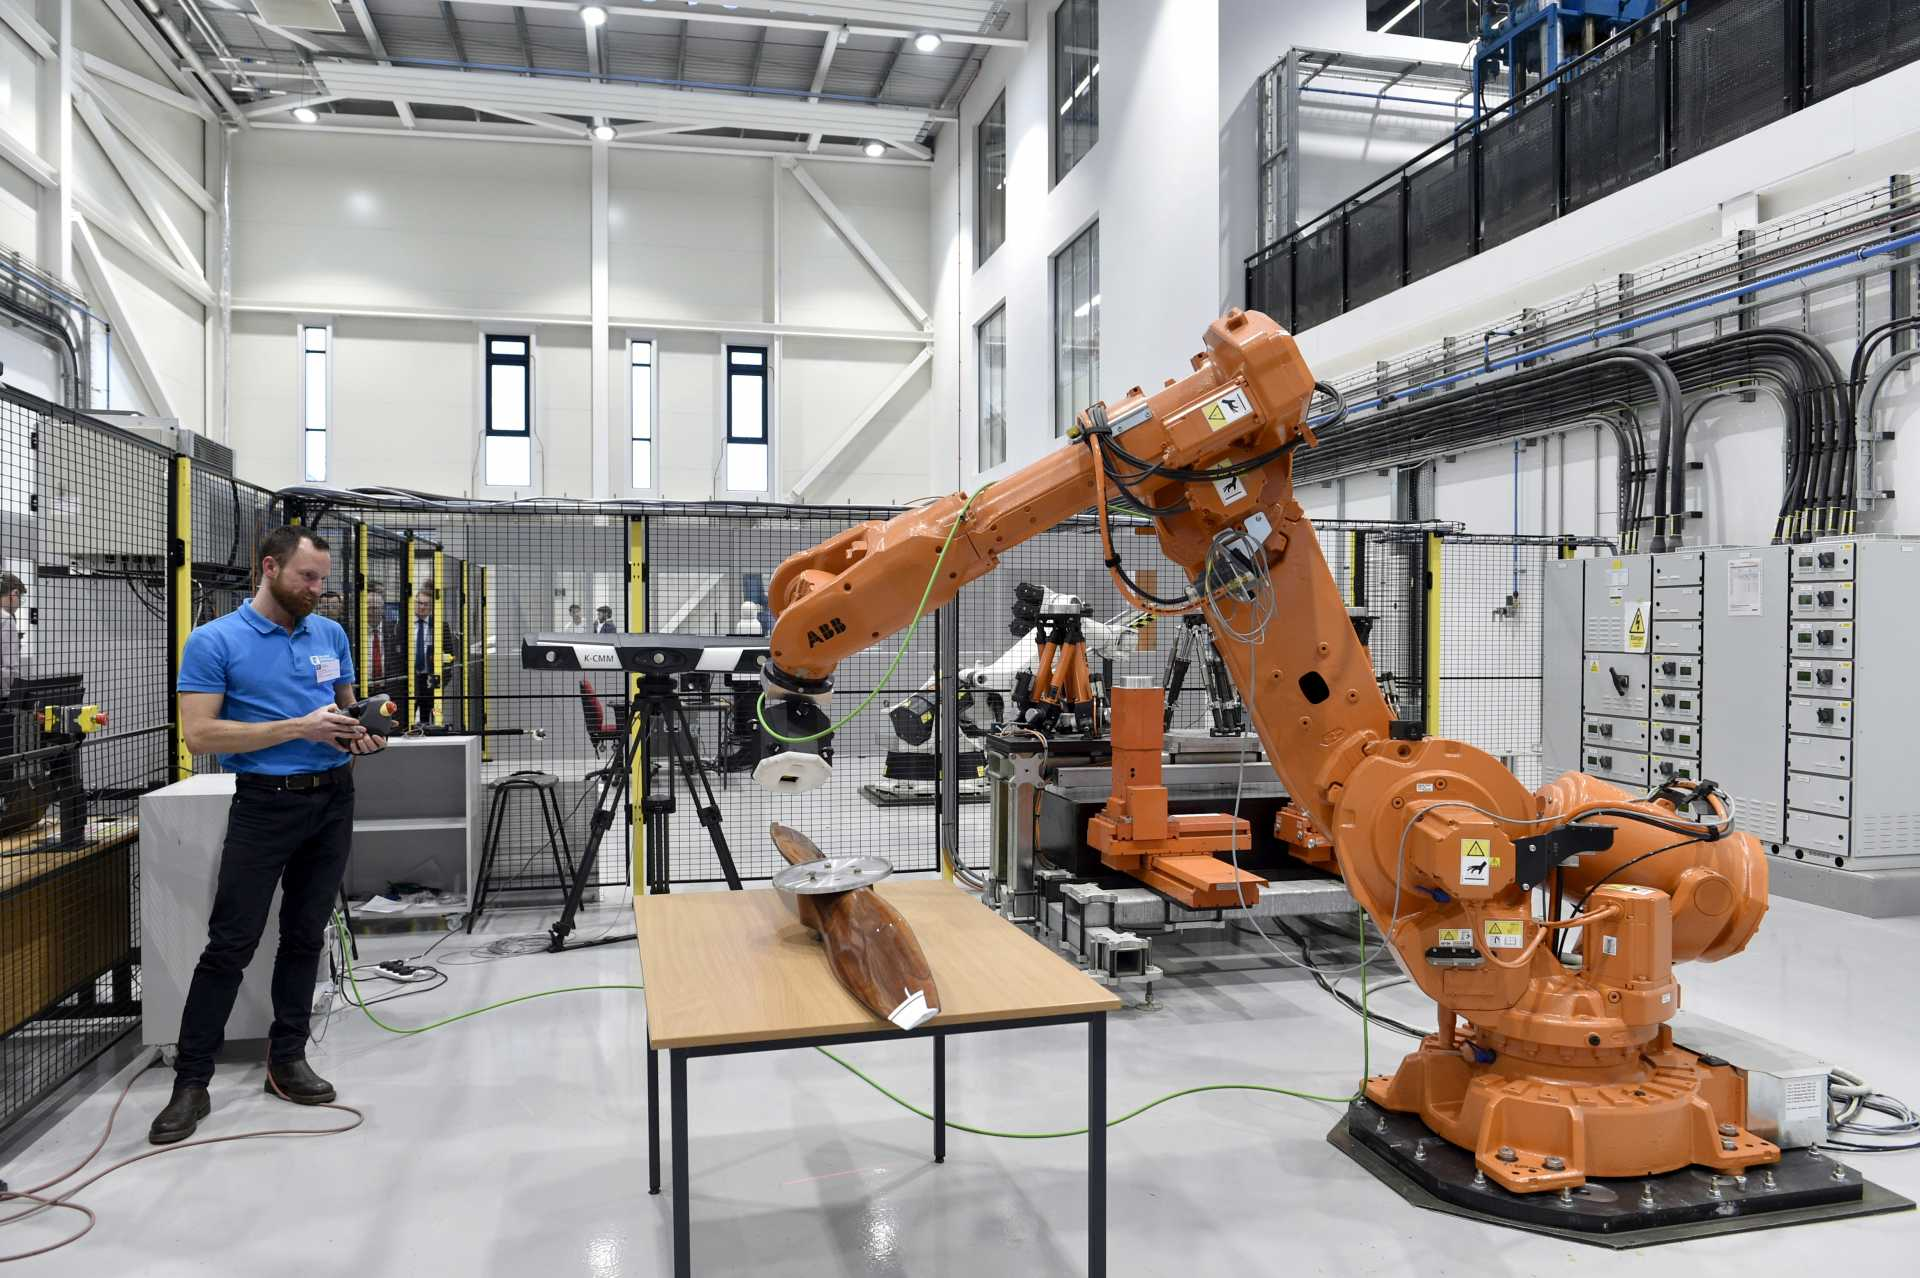 "Juergen Maier said that the building will help place the East Midlands at the centre of digital manufacturing: ""It's important because our future lies in driving a new technological revolution focusing on AI, automation, robotics and 3D printing."""